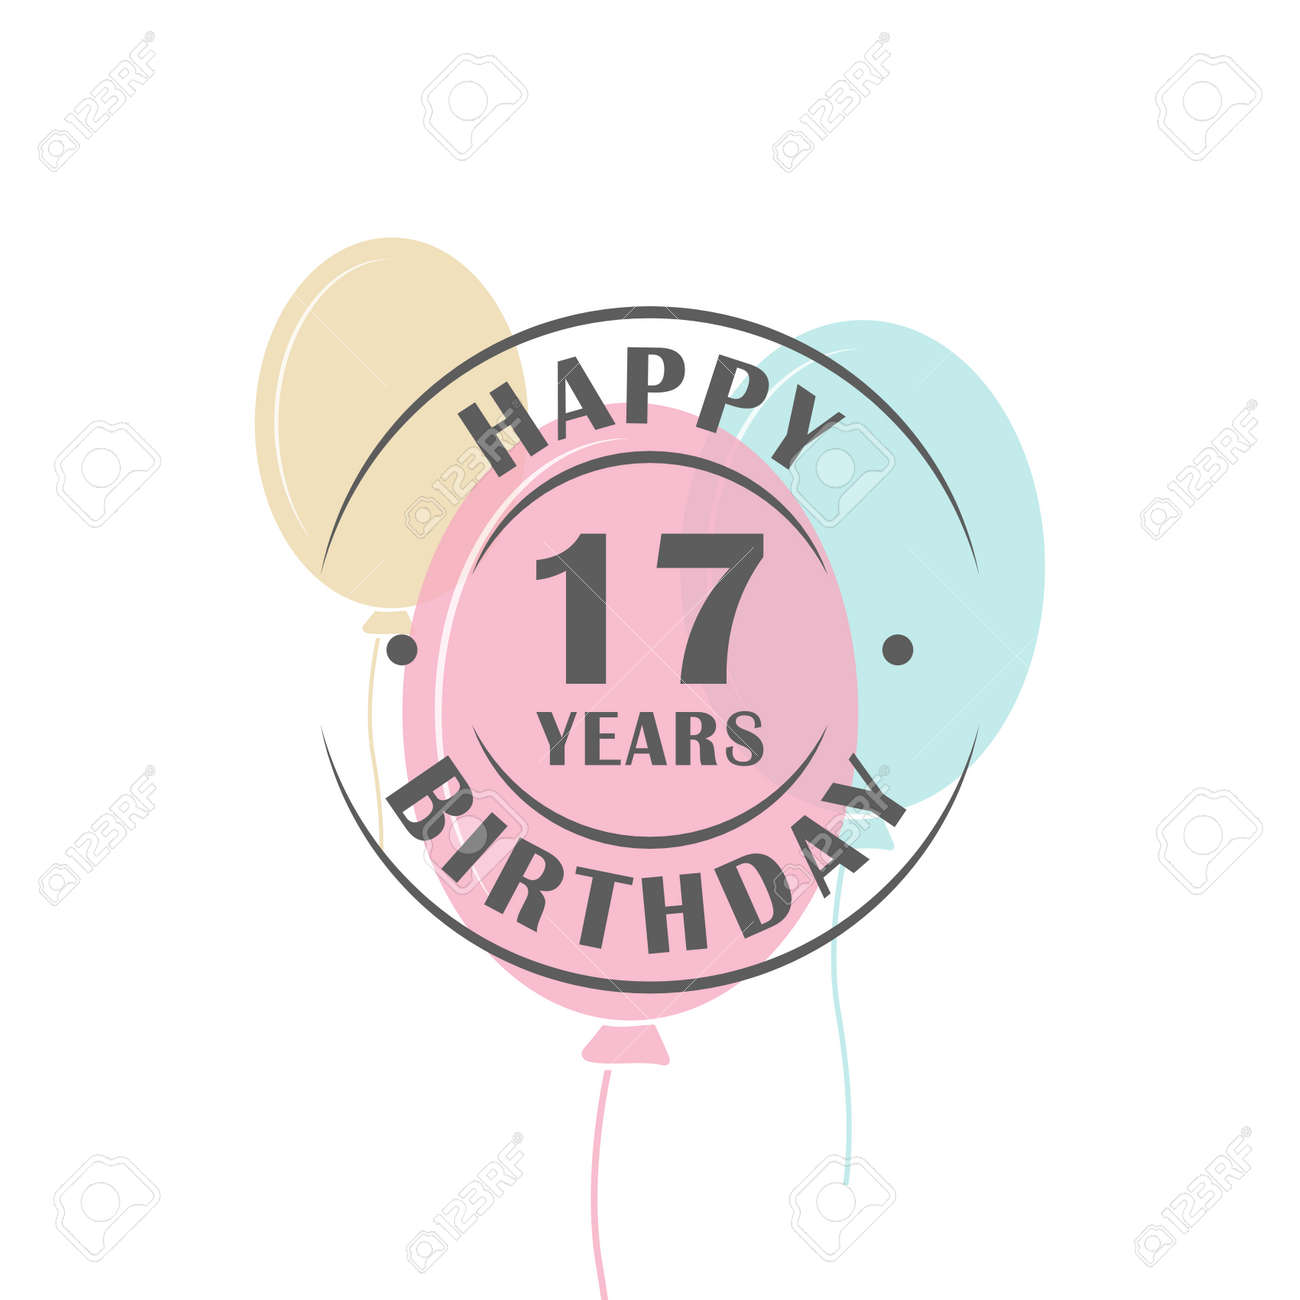 Happy birthday 17 years round logo with festive balloons, greeting card template Stock Vector -